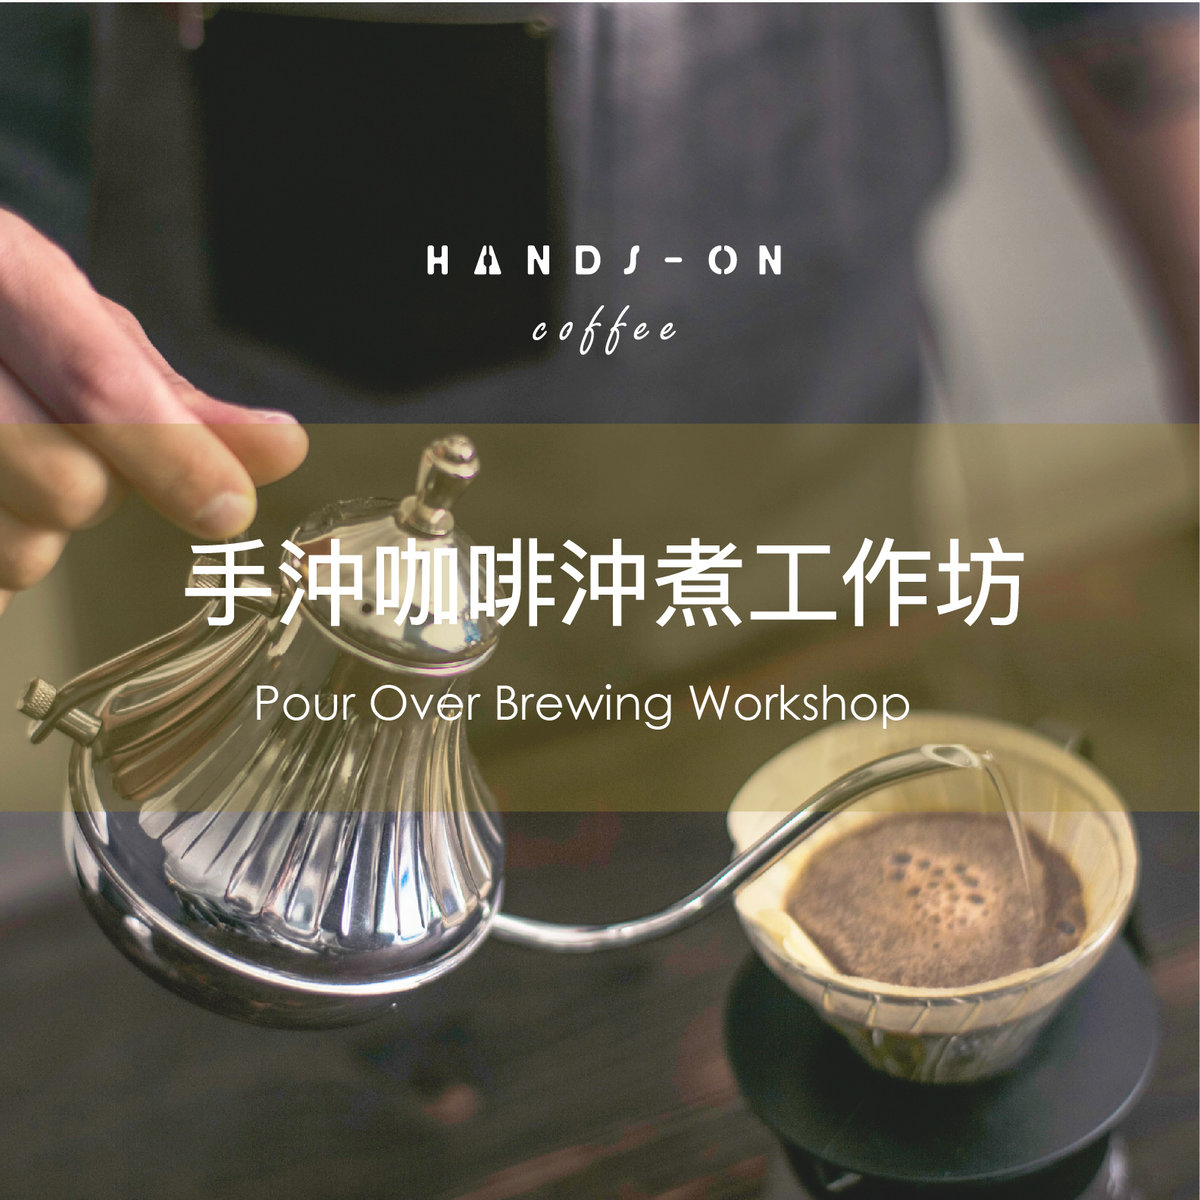 (3/9) [Special Discount for Two] Pour Over Brewing Workshop